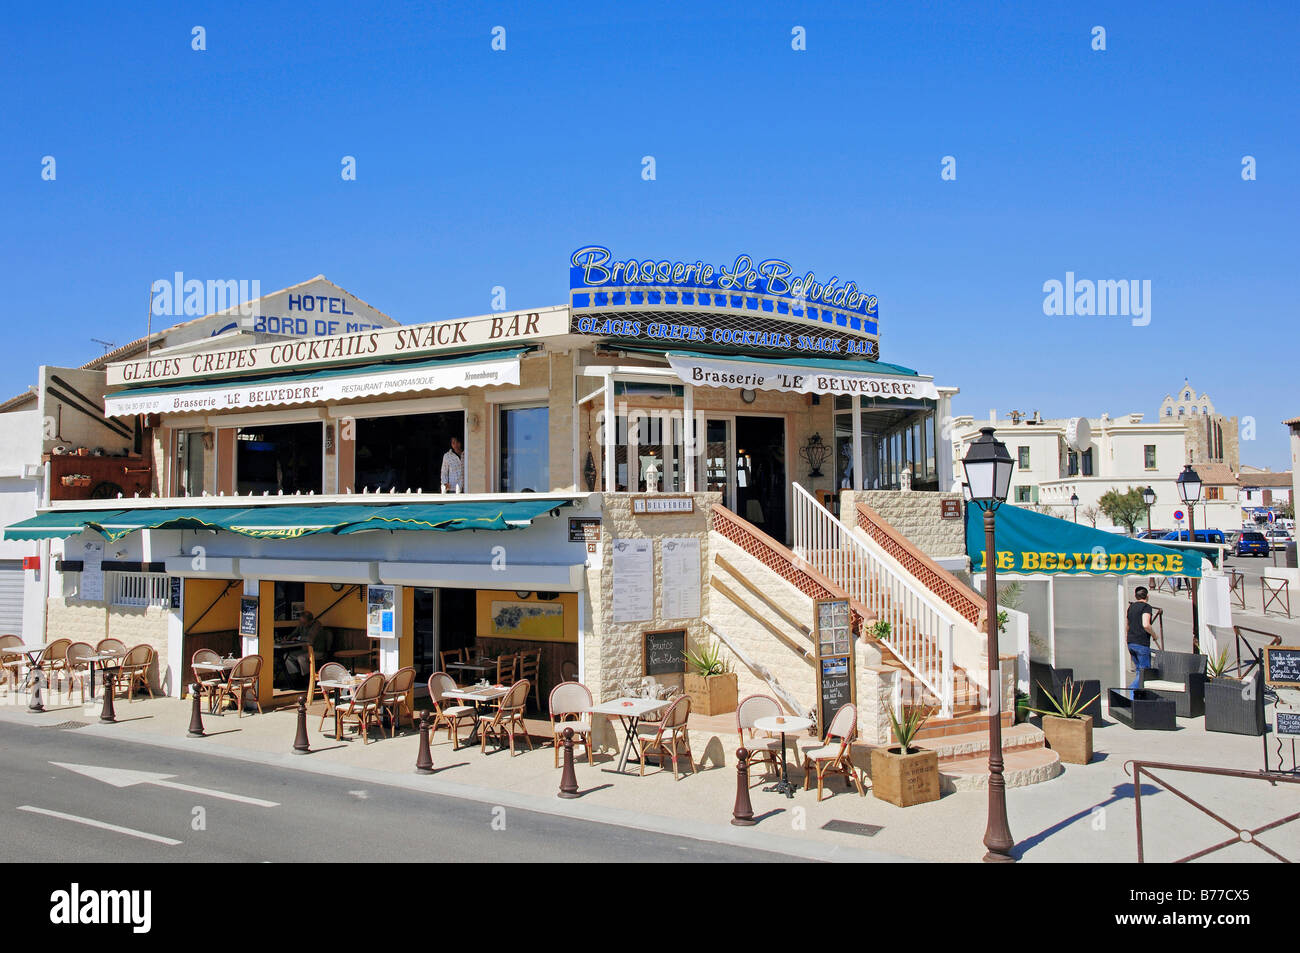 restaurant brasserie le belvedere les saintes maries de la mer stock photo royalty free image. Black Bedroom Furniture Sets. Home Design Ideas